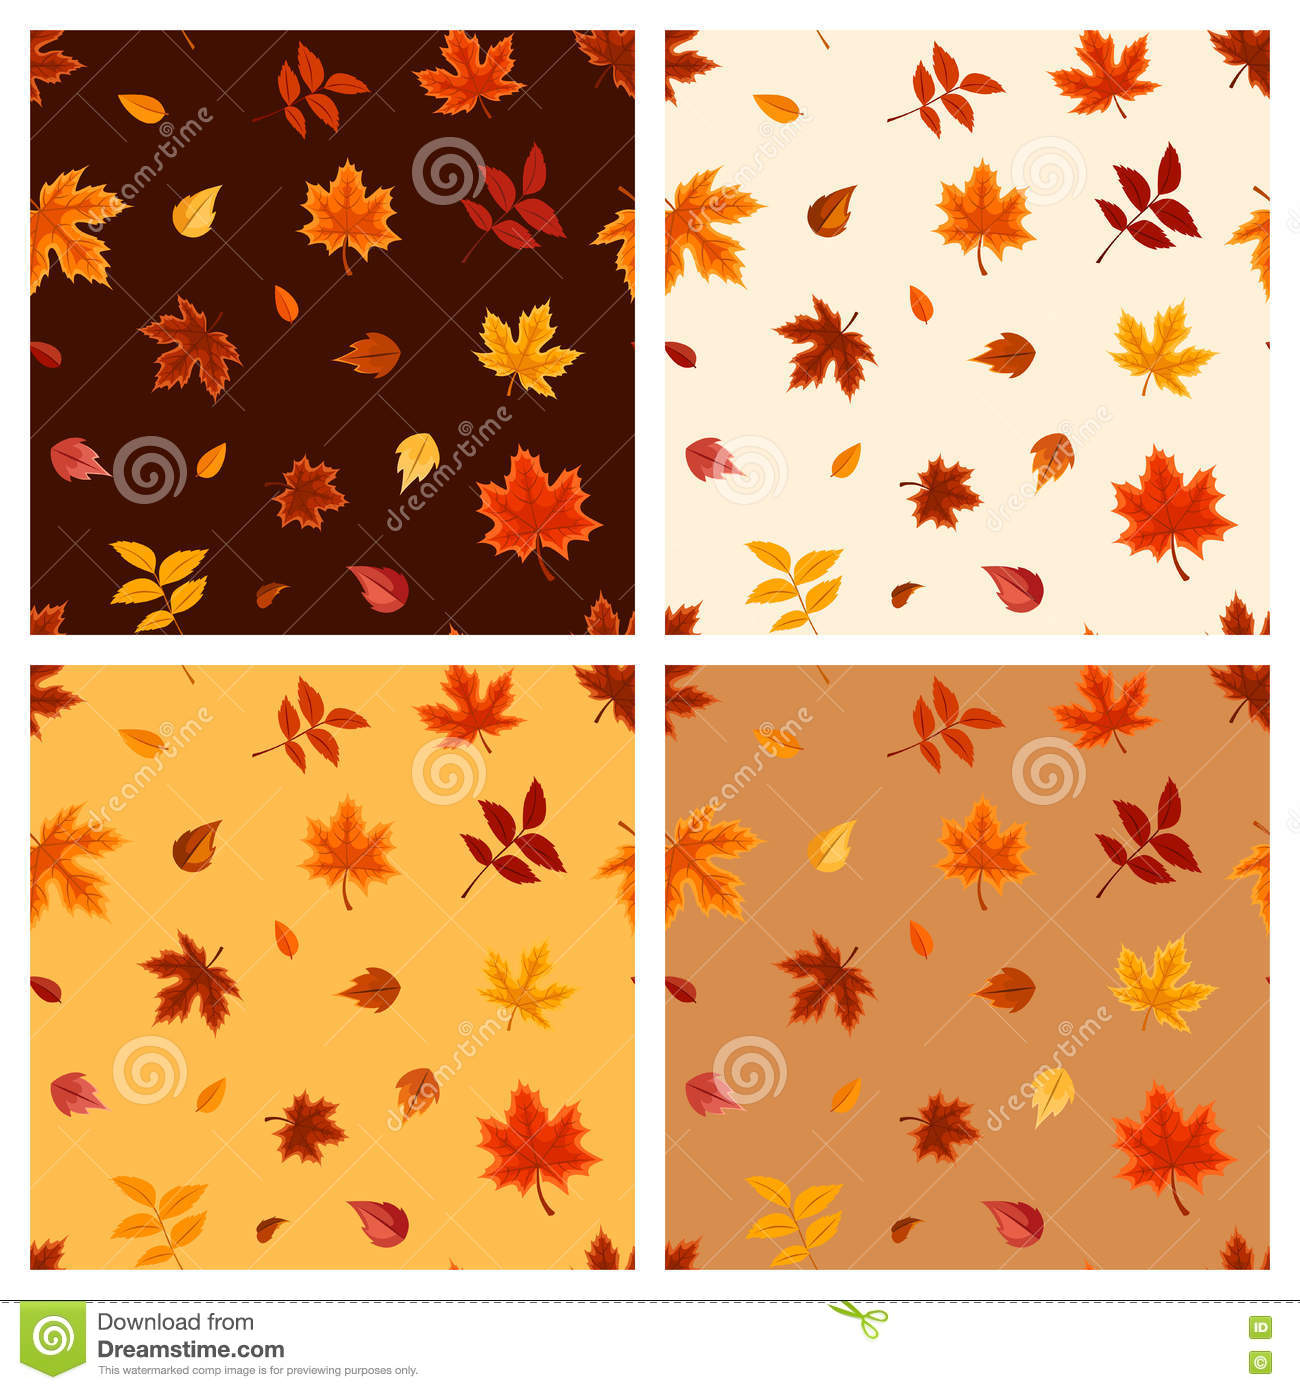 Set of four seamless patterns with autumn leaves. Vector illustration.